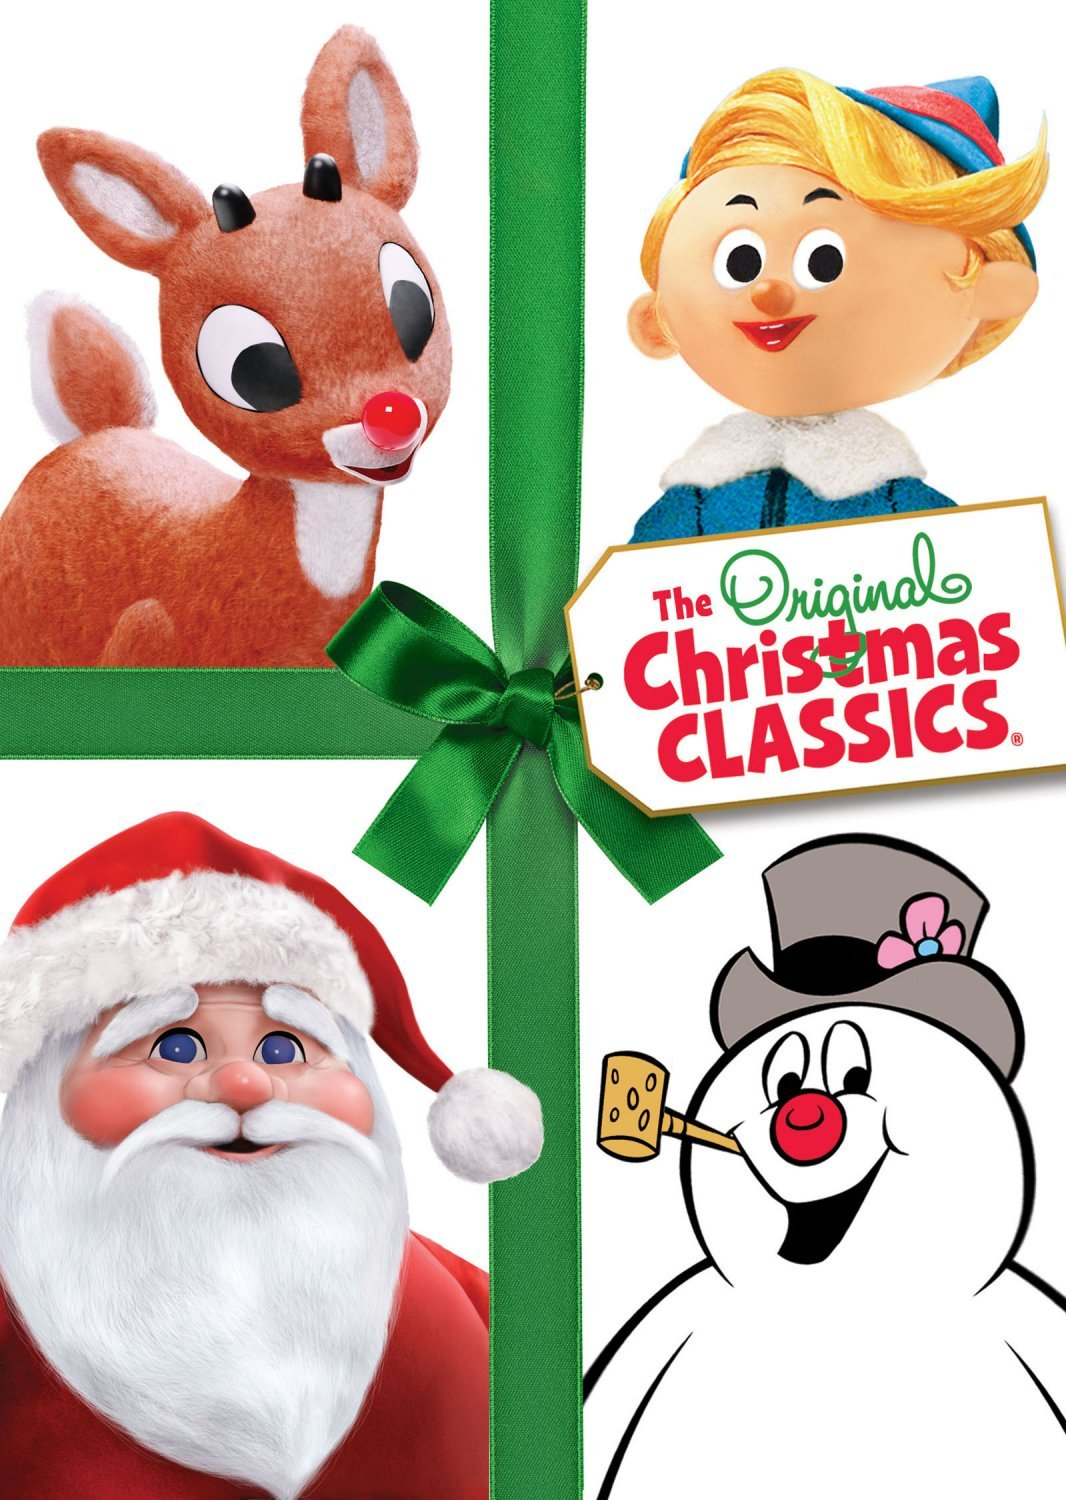 Amazoncom The Original Christmas Classics Gift Set with